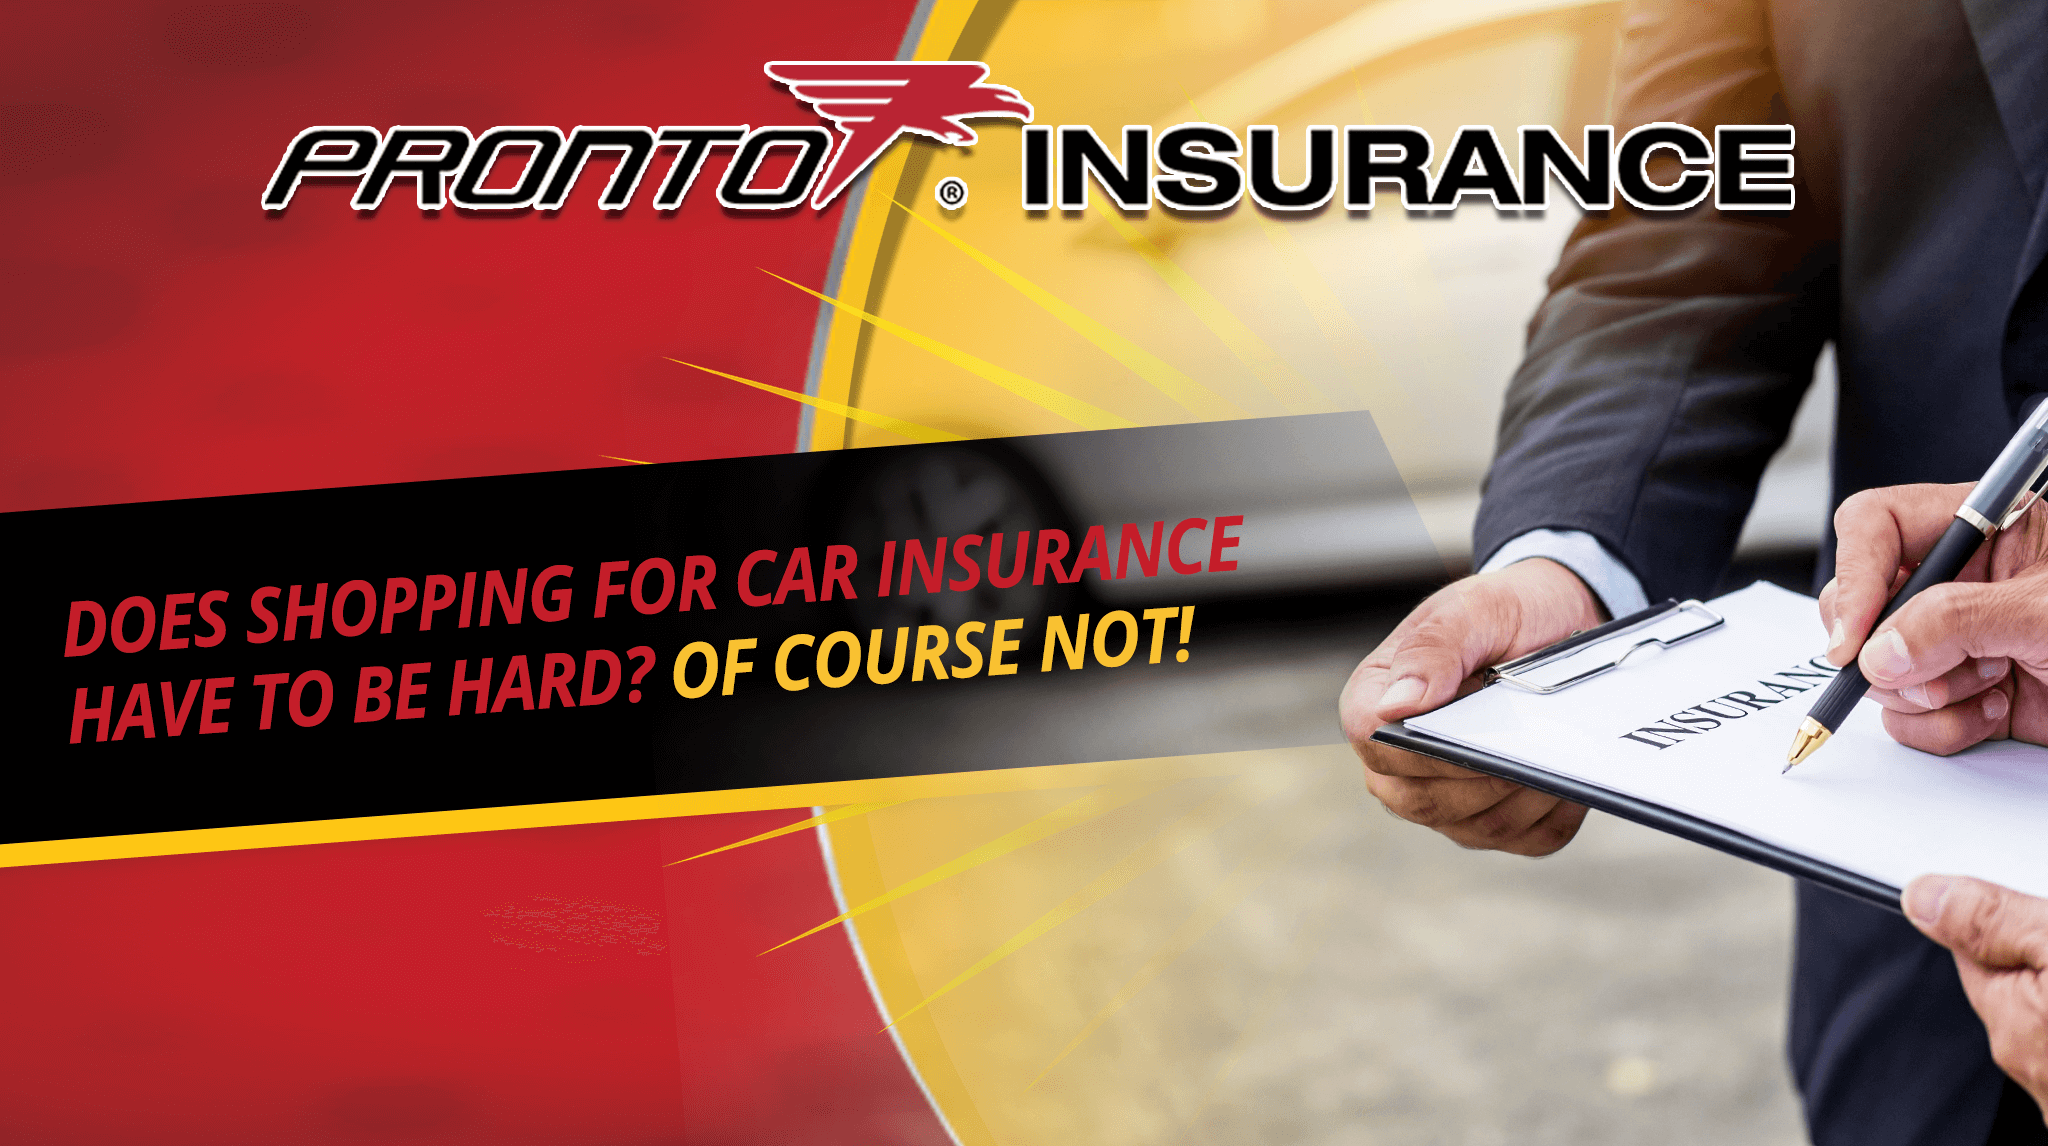 Does Shopping for Car Insurance Have to be Hard? Of Course Not!